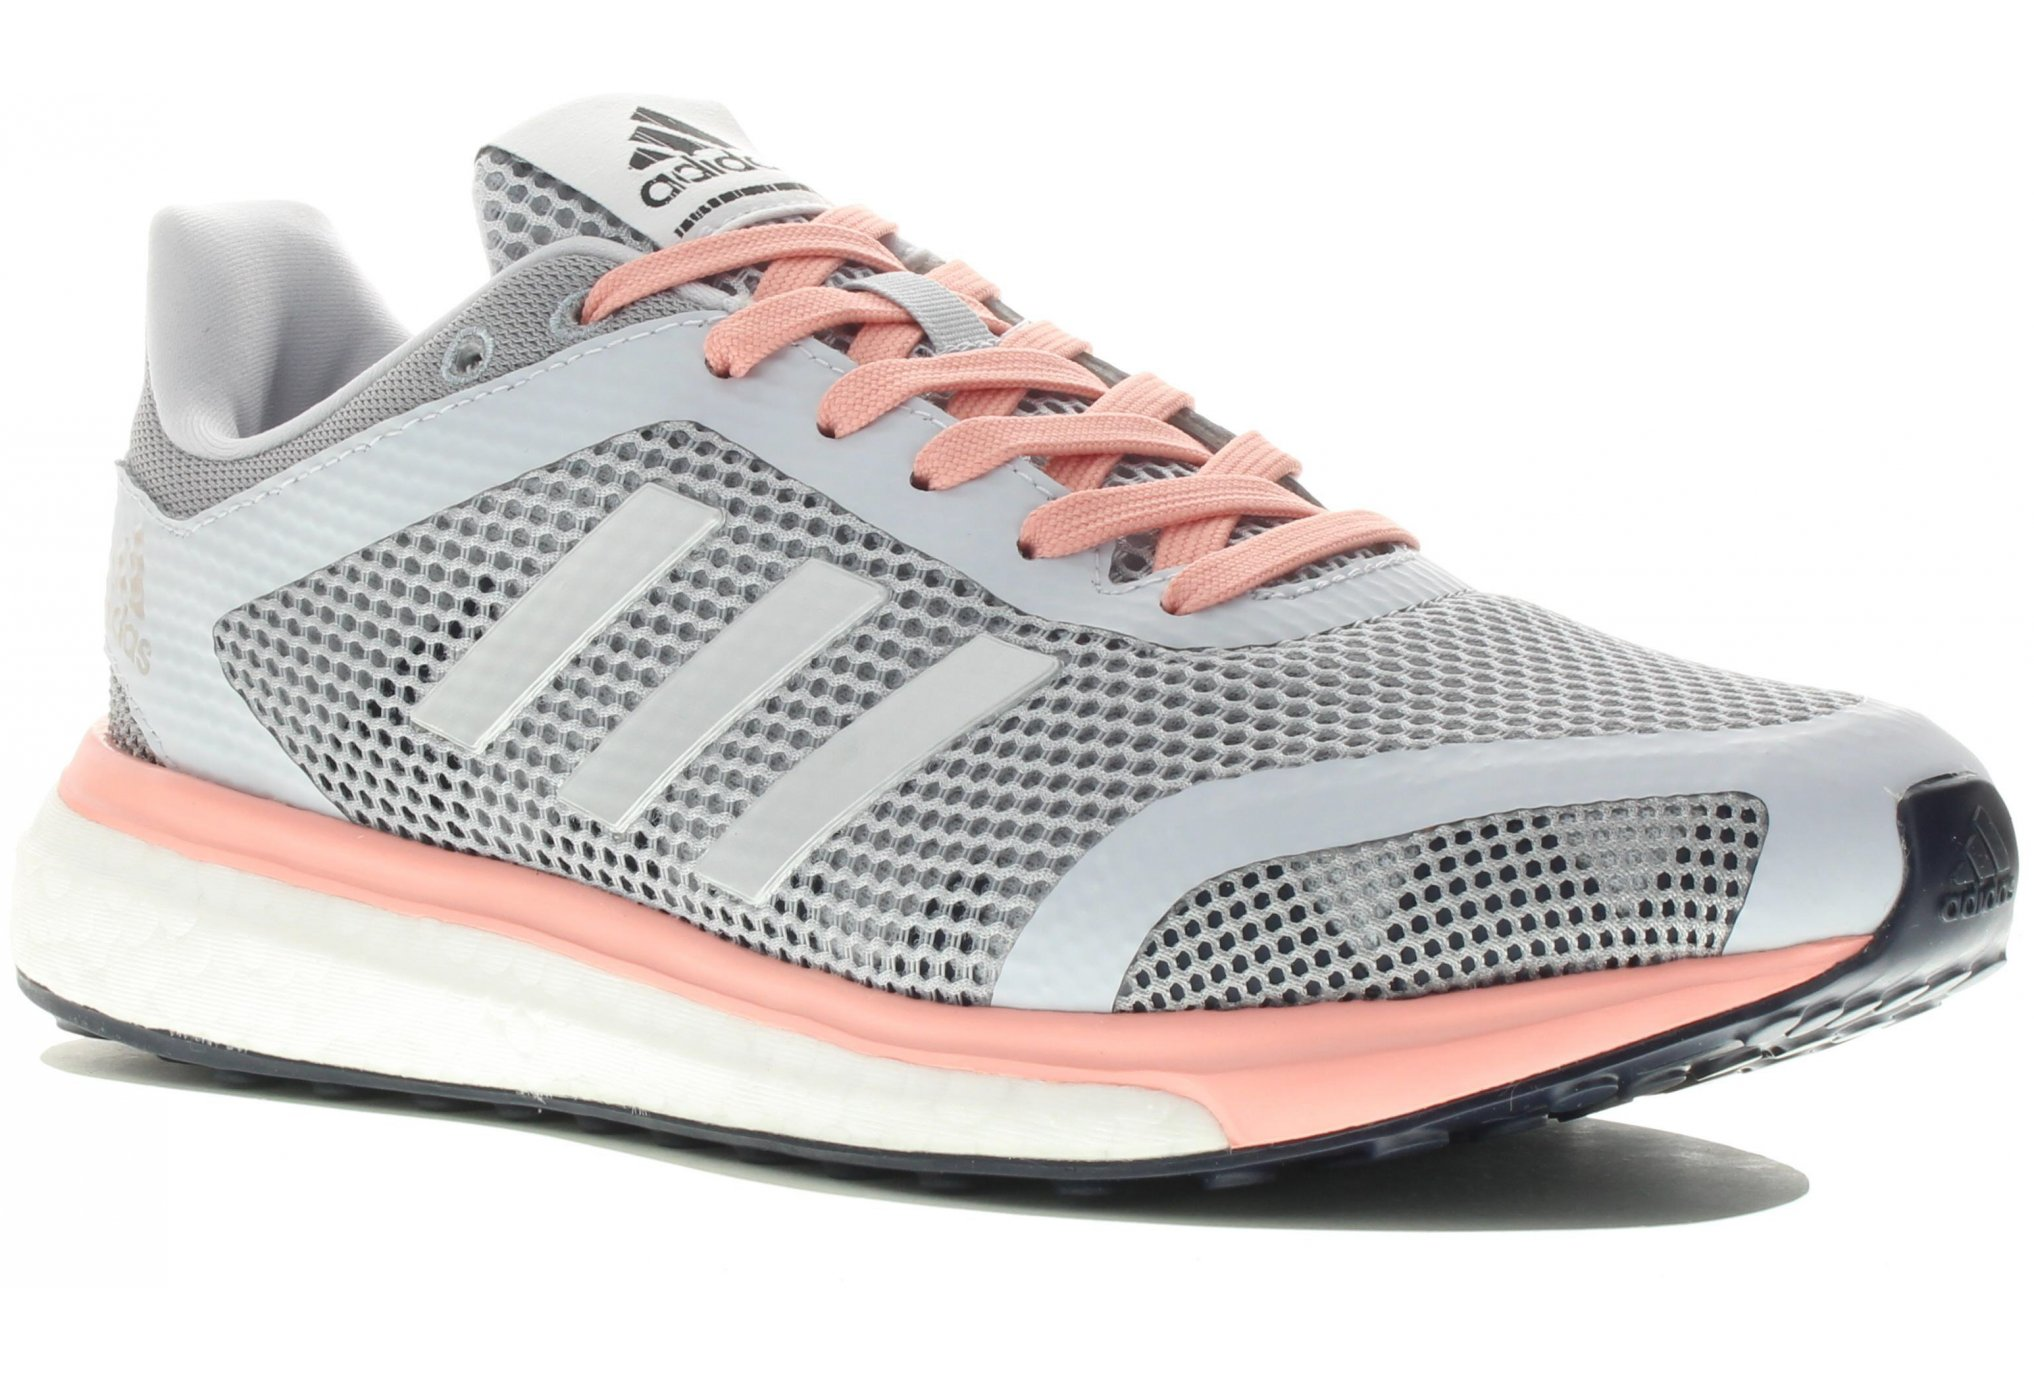 La Lupeenne ResponseW Chaussures Femme Course Nature Adidas